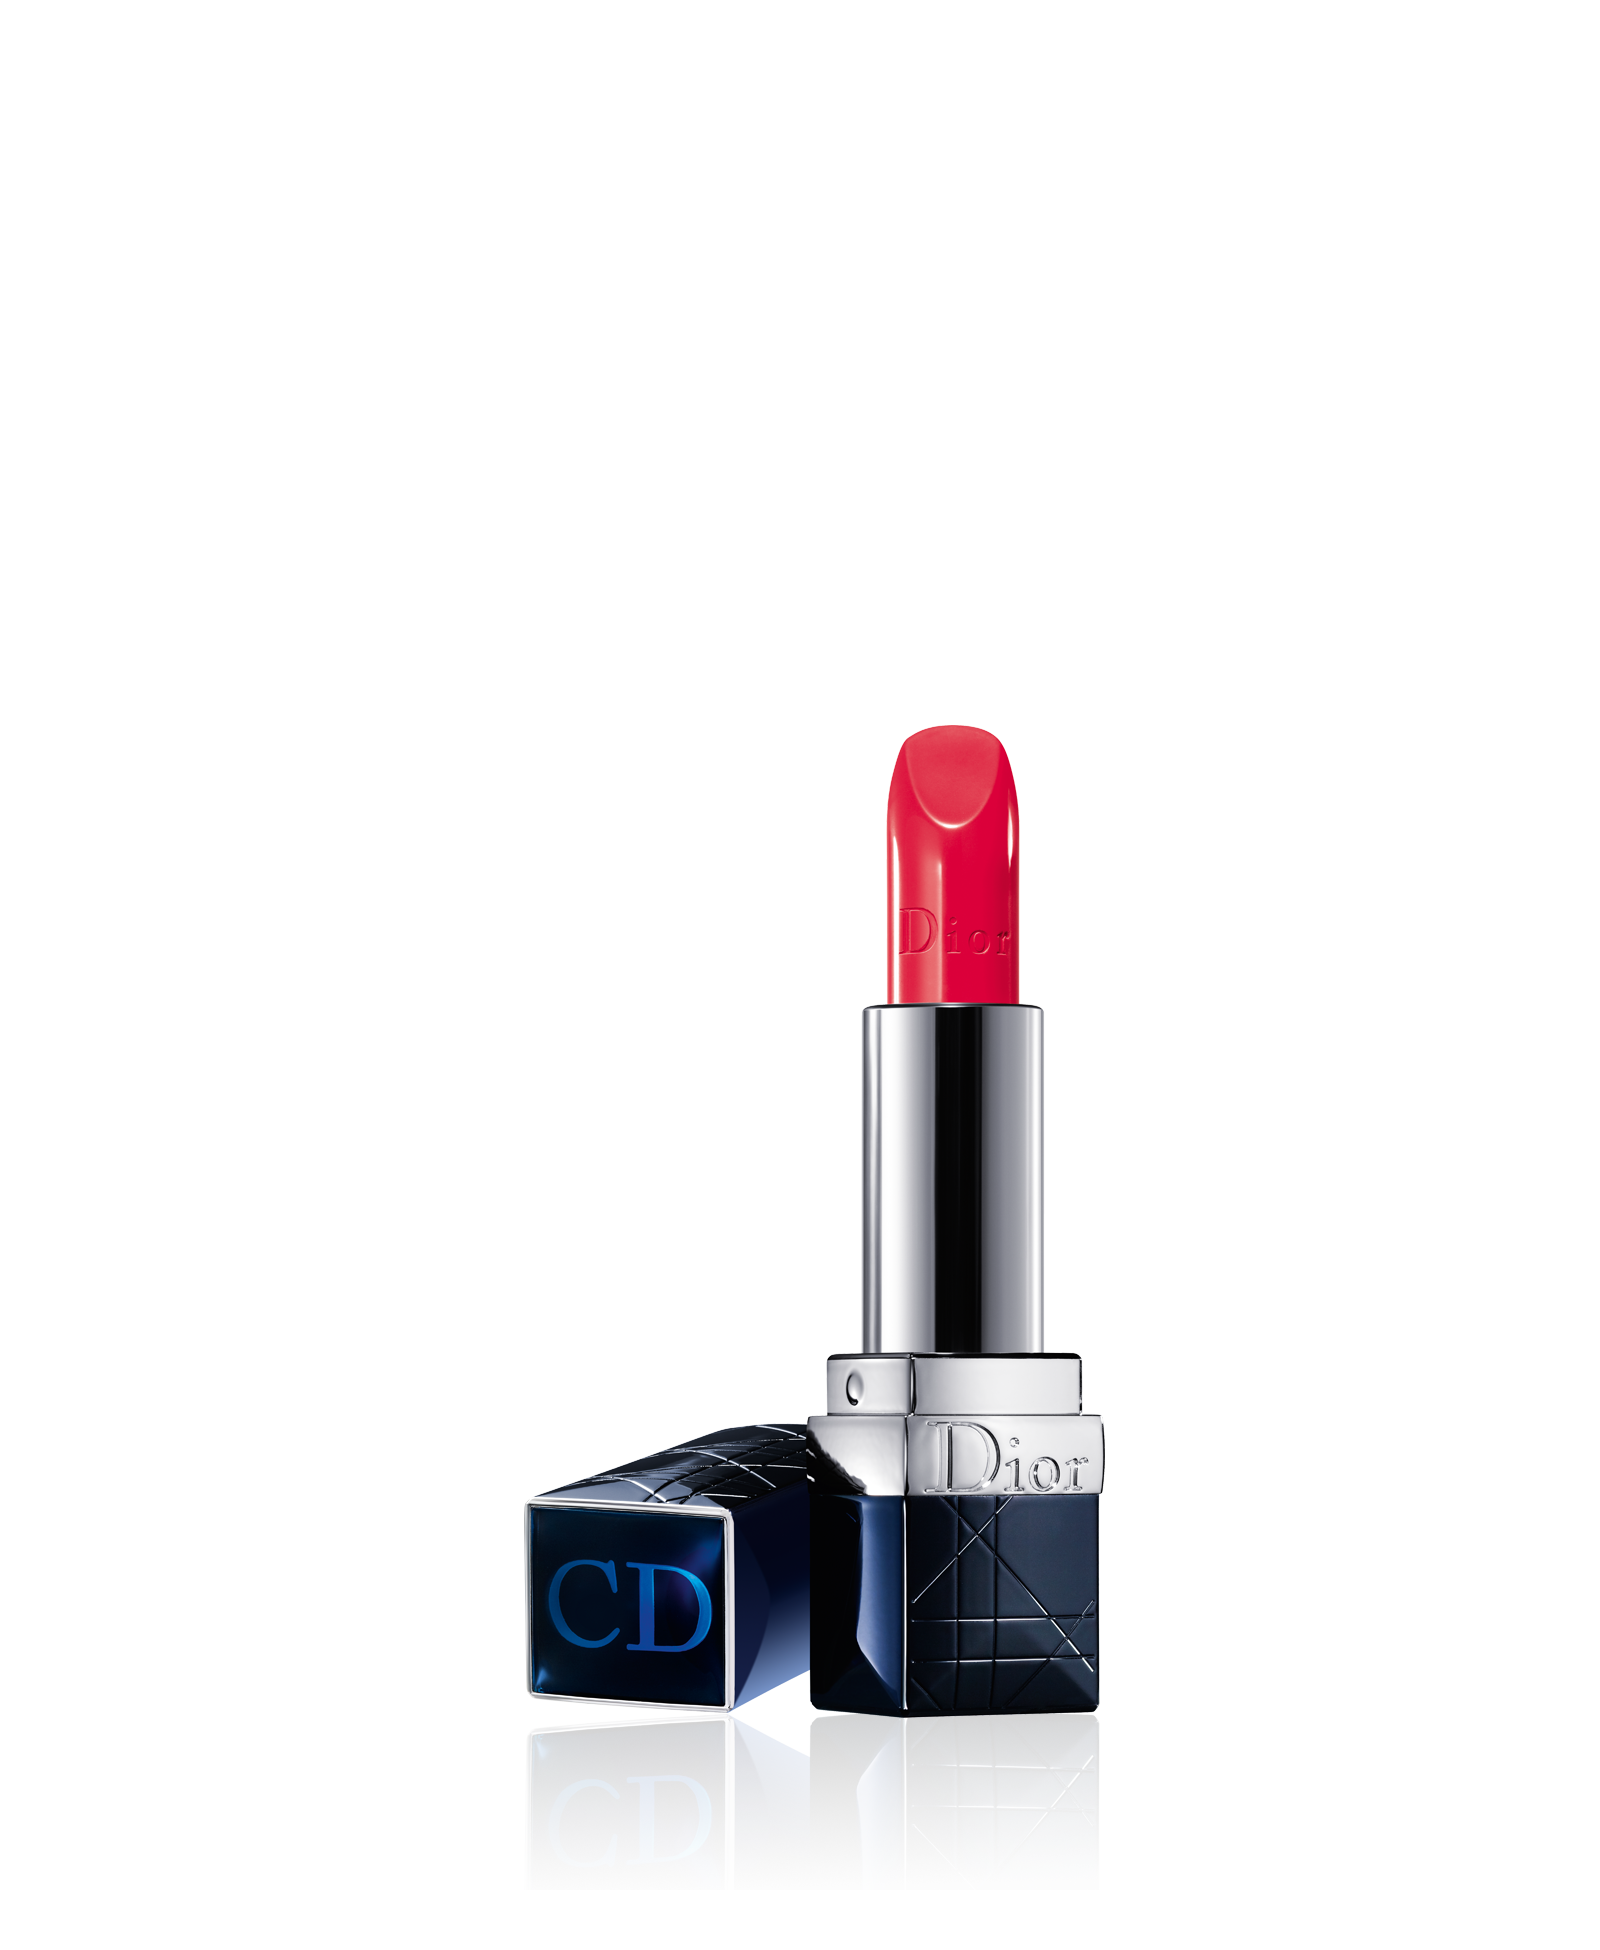 Rouge Dior 13743430501.png